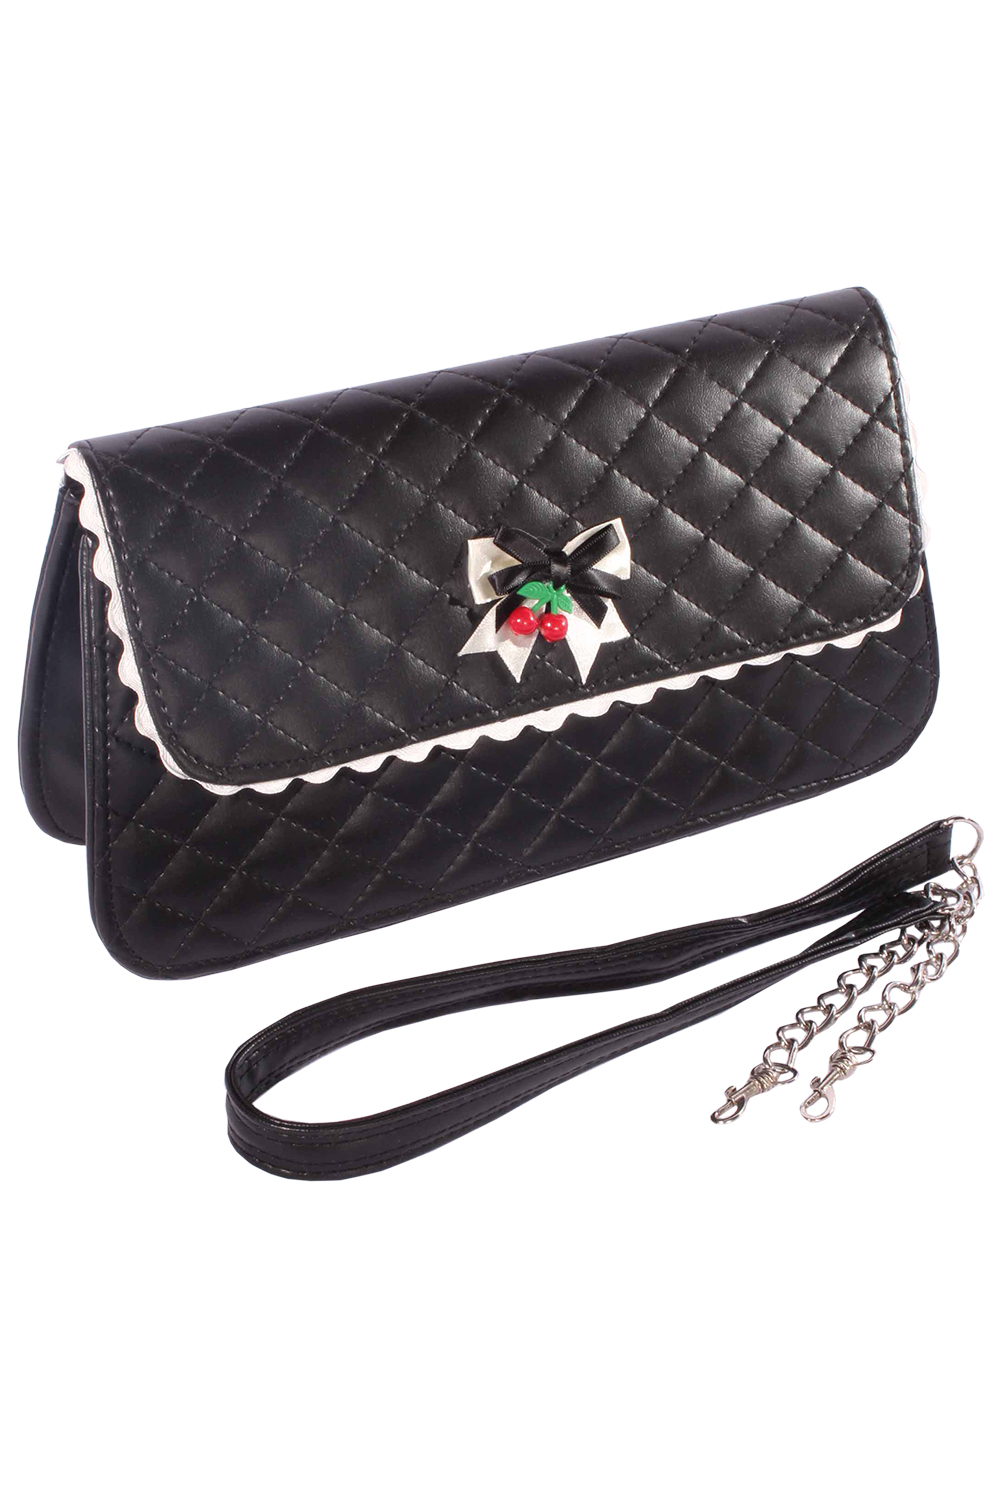 vintage Argyle retro rockabilly Tasche BOW Cherry Clutch Handtasche